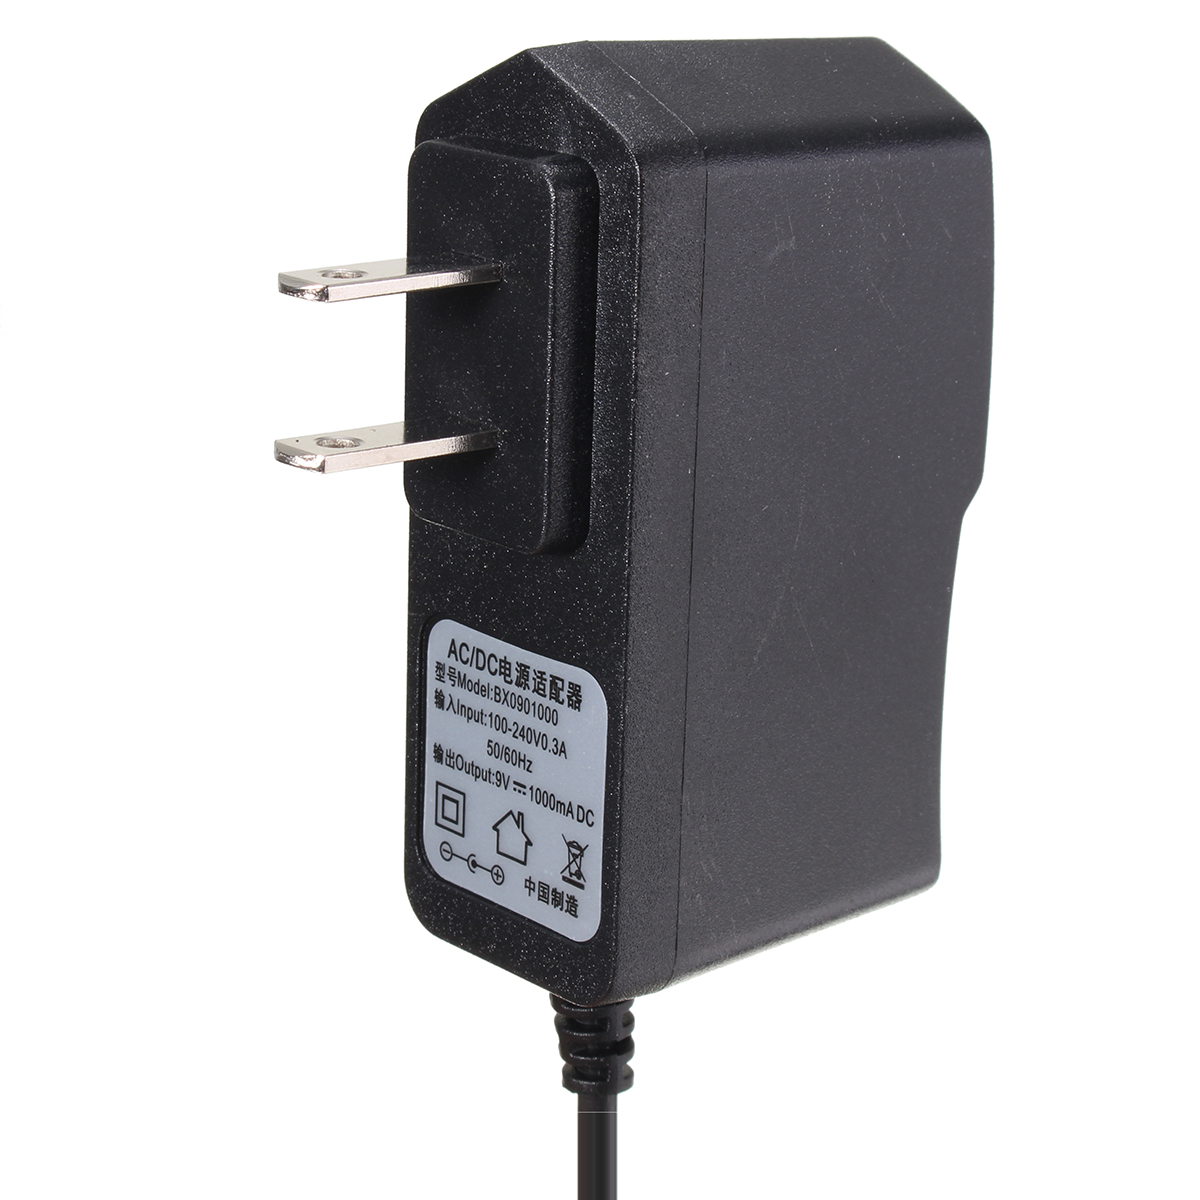 AC/DC Power Adapter Charger For Brother Label Maker P-Touch PT-D200 PT-D200VP